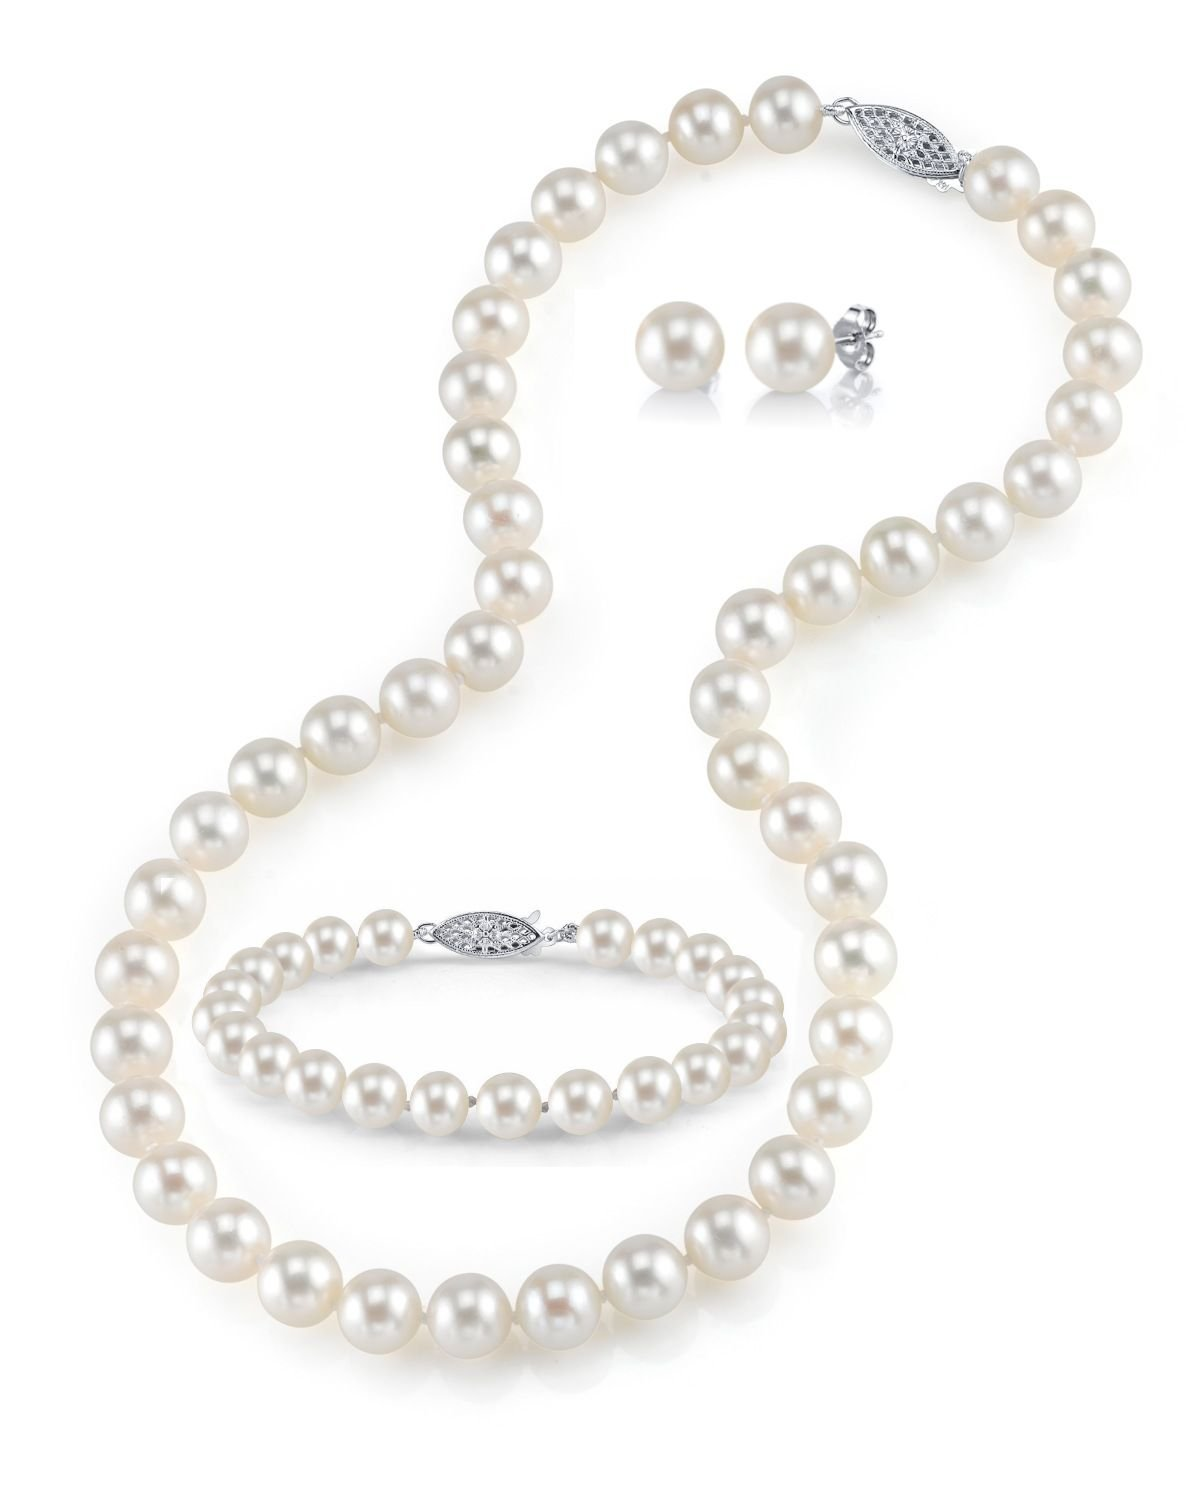 8 9mm Freshwater Pearl Necklace Bracelet Earrings